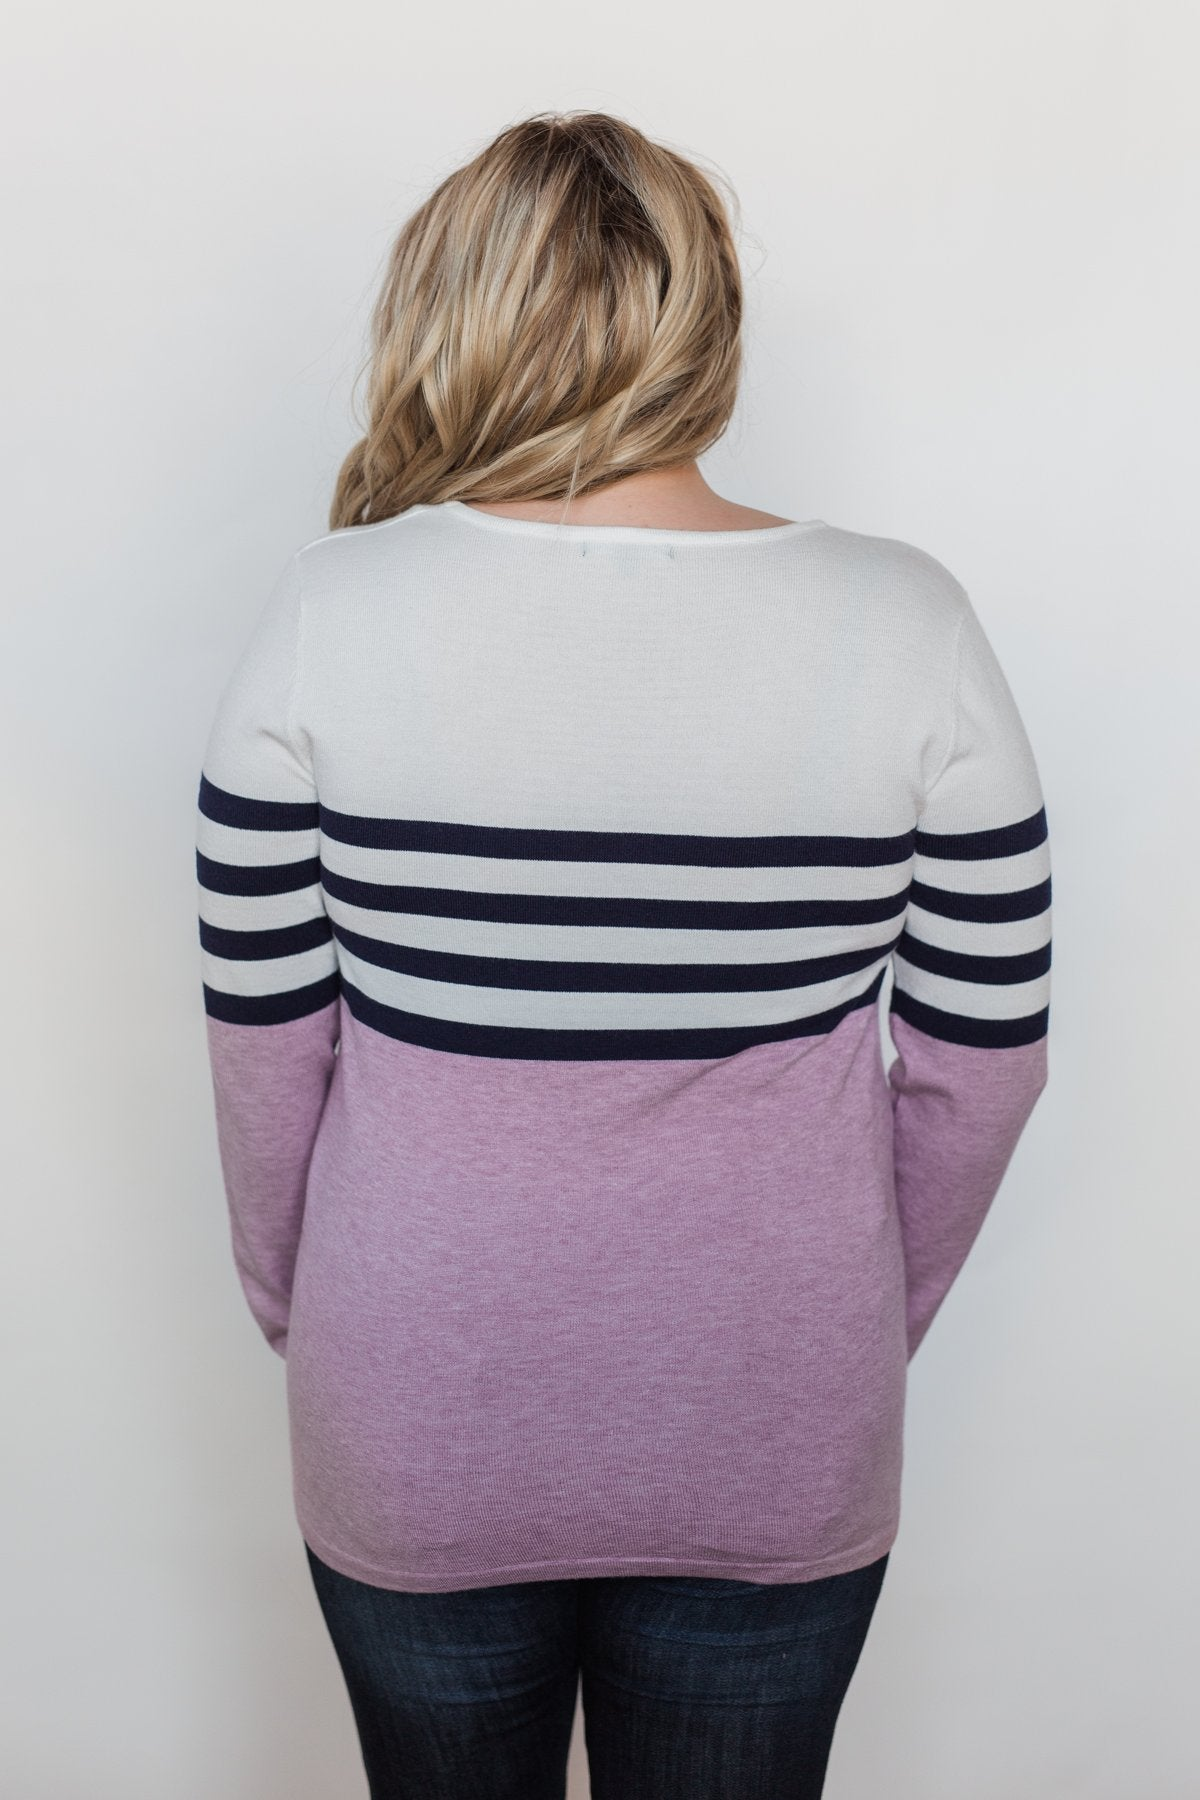 Fine by Me Striped Sweater - Lavender